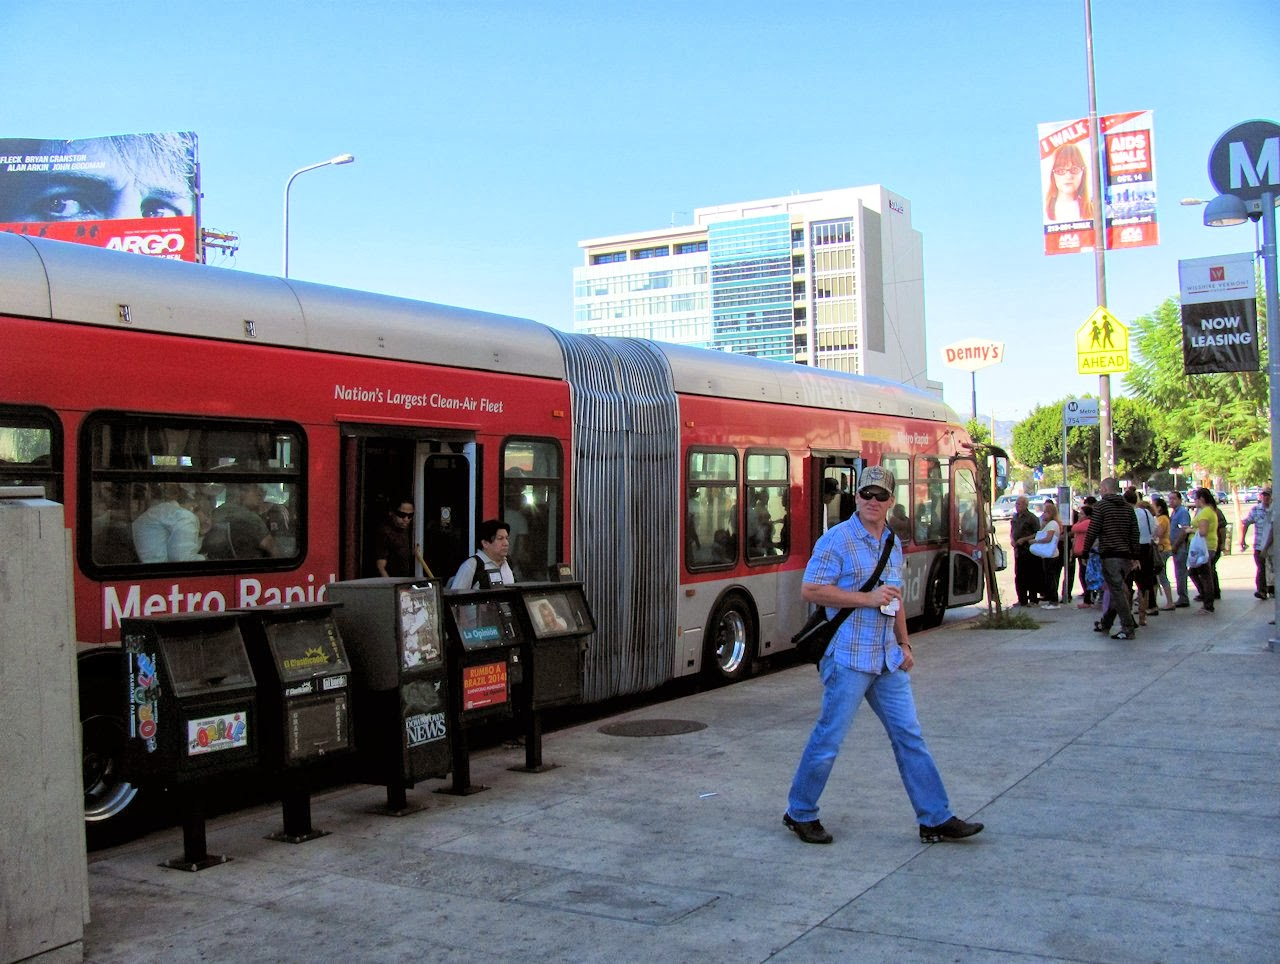 rapid transit and metro railways Is light rail or bus rapid transit a better choice for the southwest corridor what questions do you wonder about ask them in this quick poll.